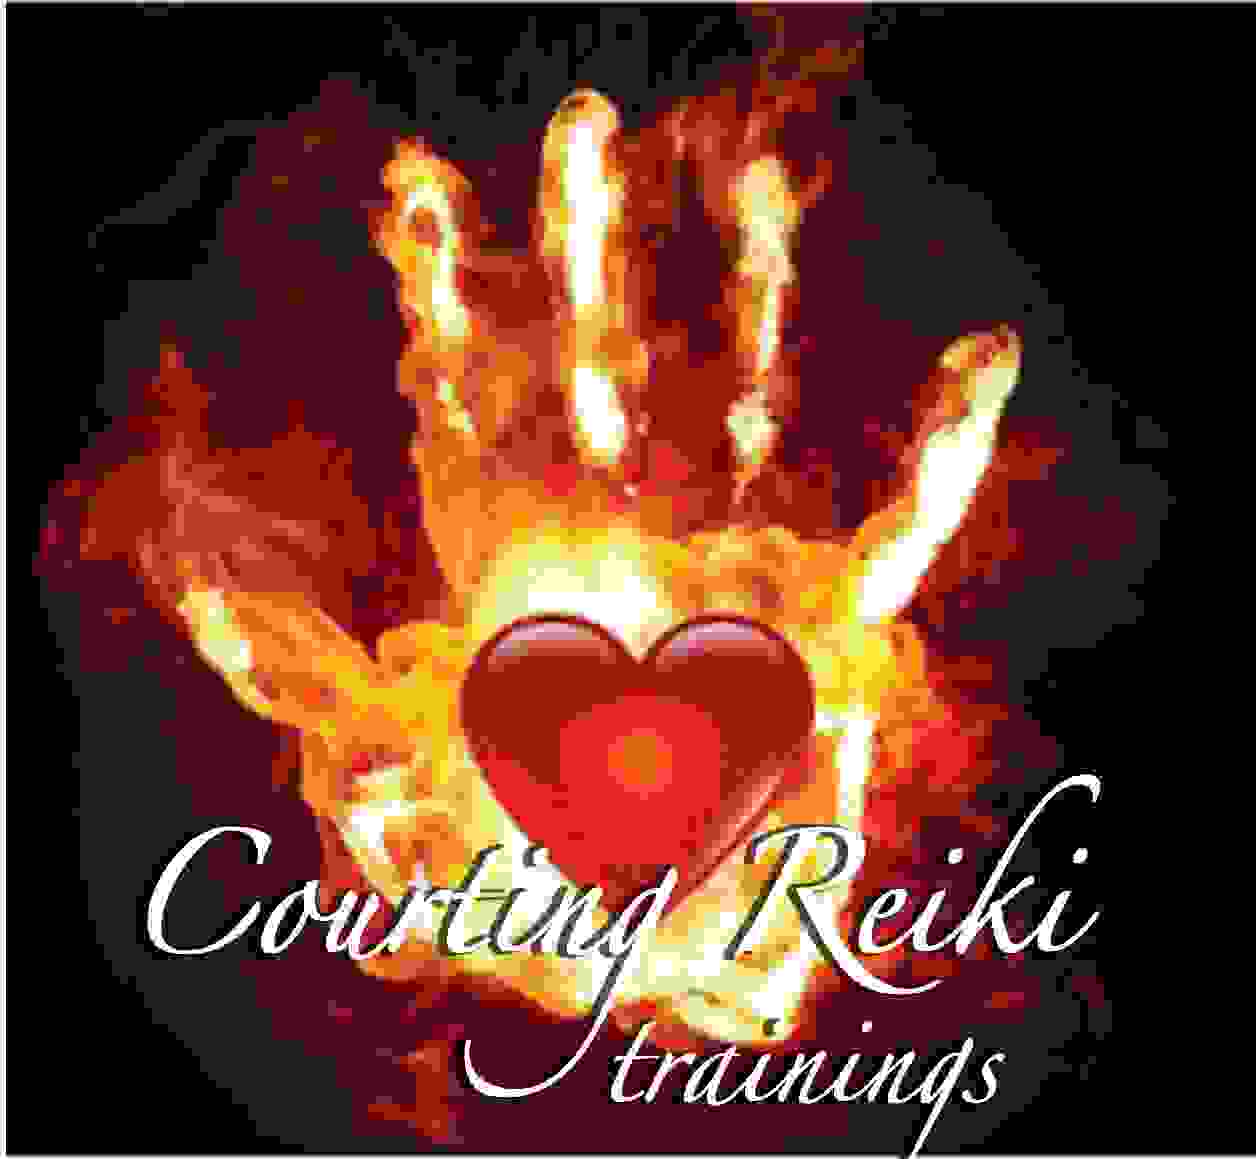 Heart in Hand graphic Reiki trainings with Come Home to you are called Courting Reiki trainings